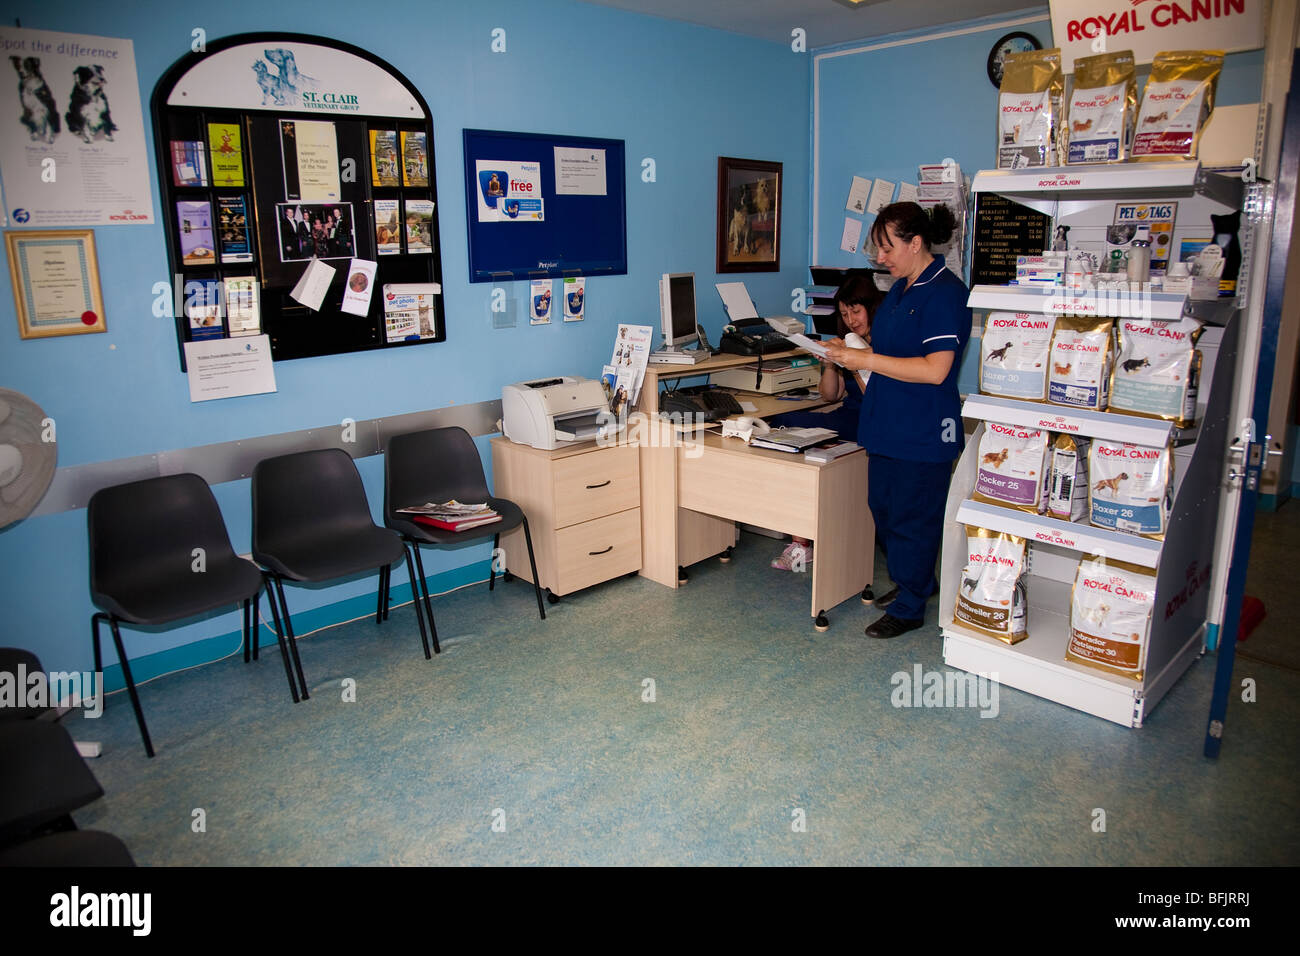 Reception and Waiting Room at a Veterinary Clinic - Stock Image